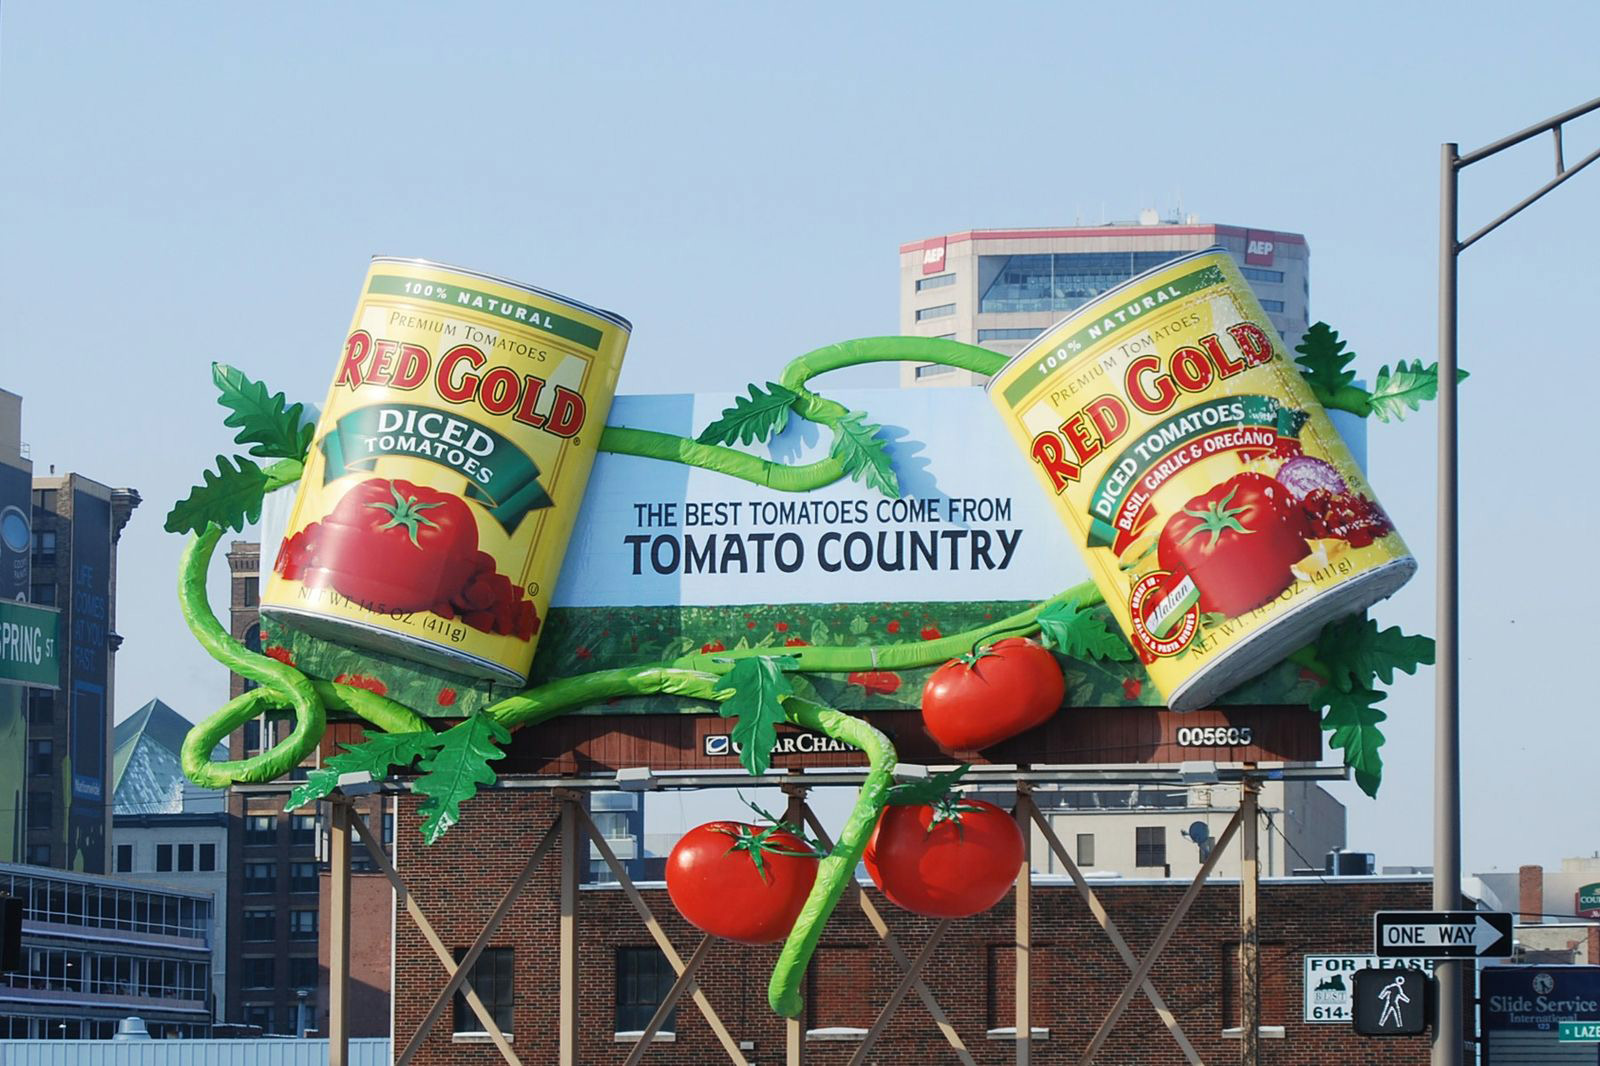 Our Selection of the Most Eye-Catching Ads on Billboards – Adweek